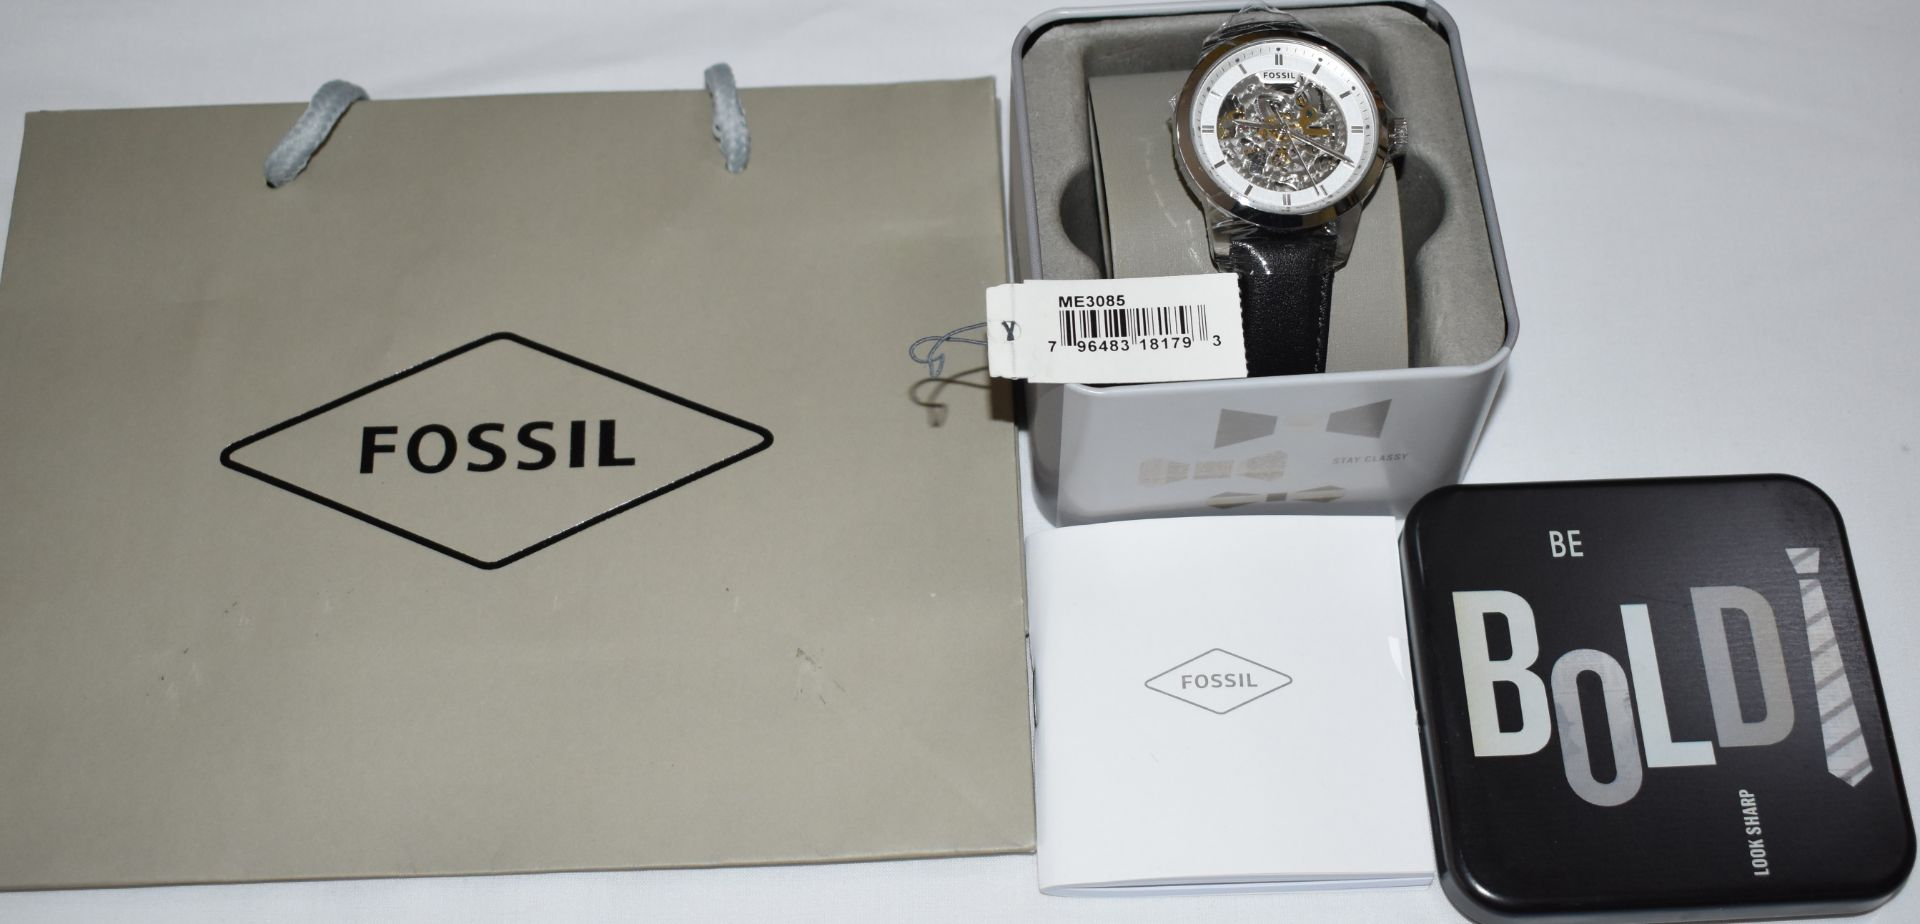 Fossil Men's Watch ME3085 - Image 2 of 3